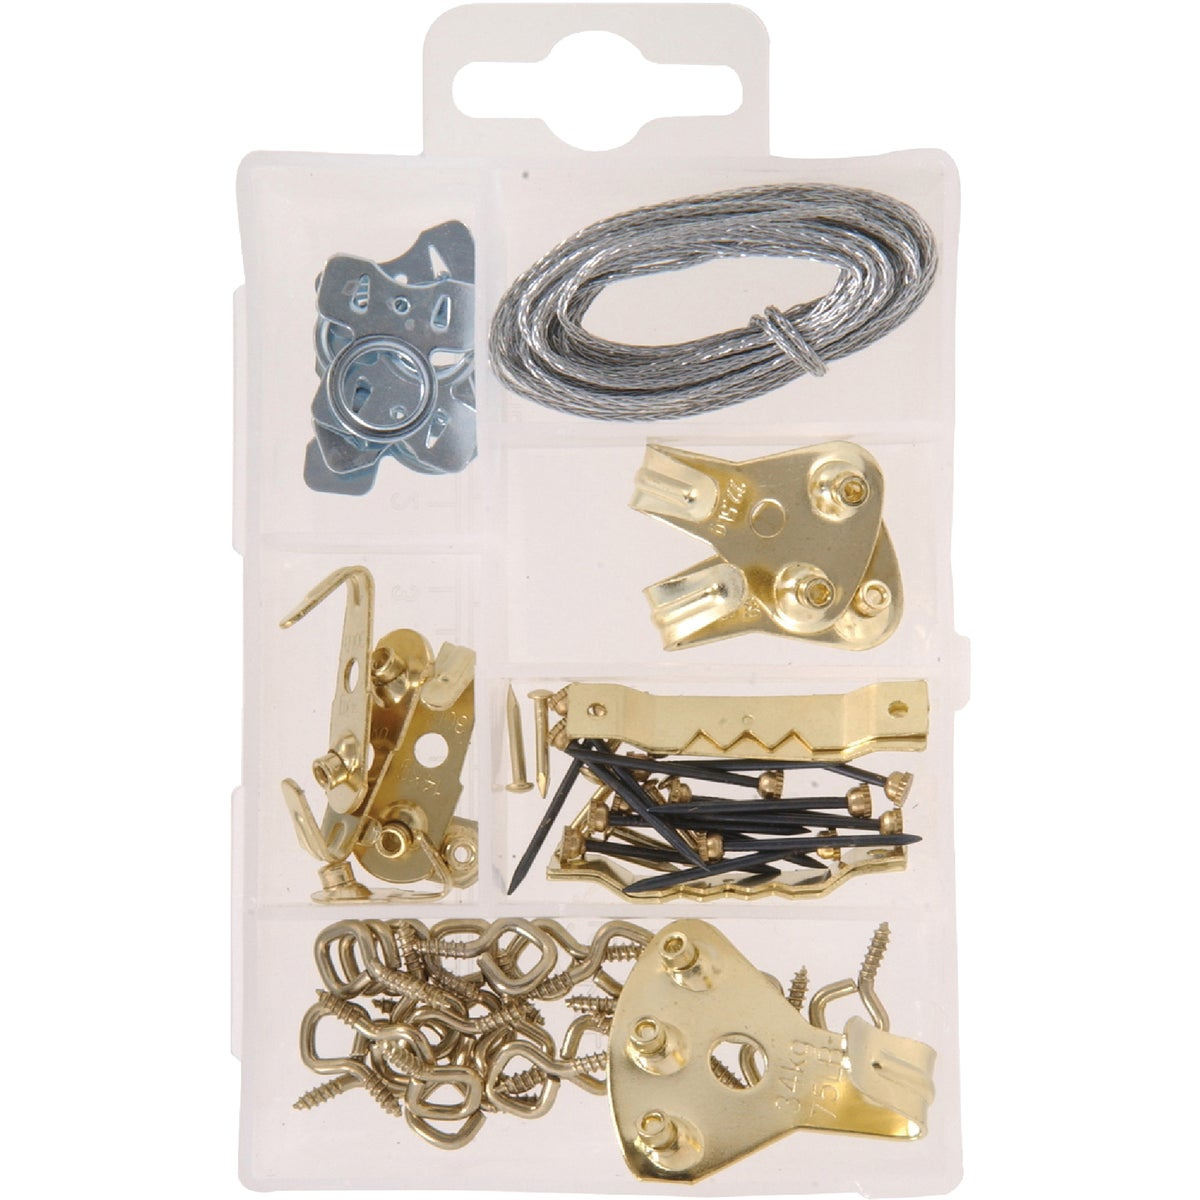 KIT PICTURE HANGERS SM - 130200 by Hillman Fastener